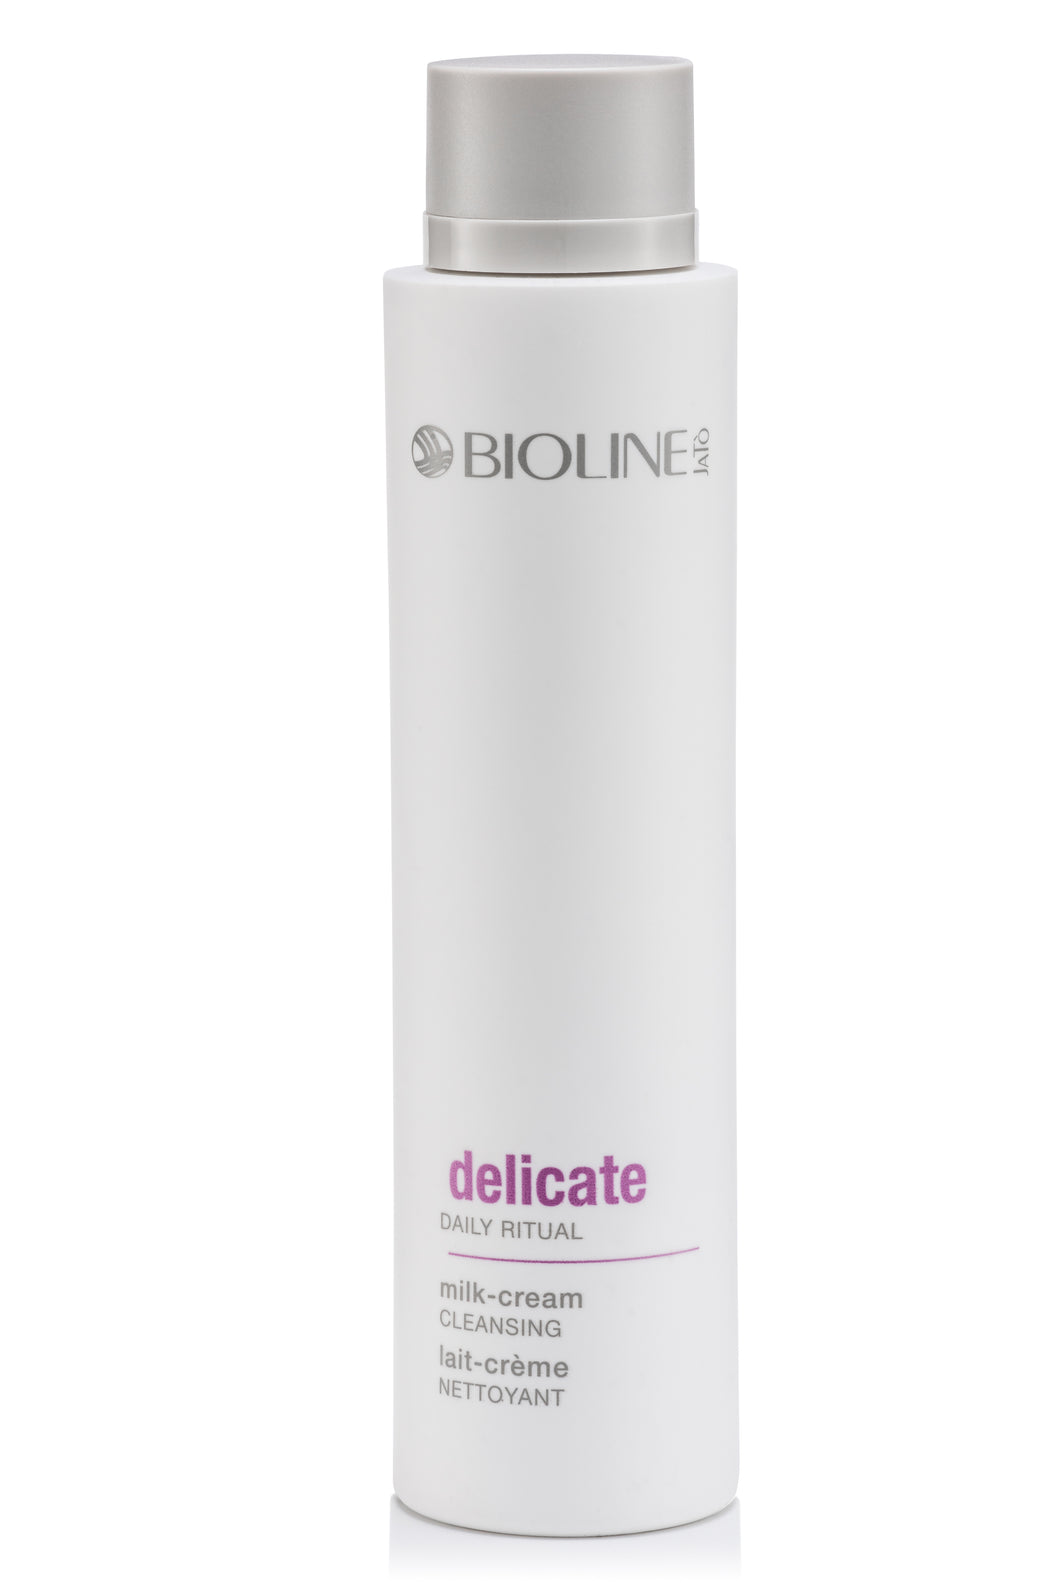 Bioline Daily Ritual Delicate Milk-Cream Cleancing